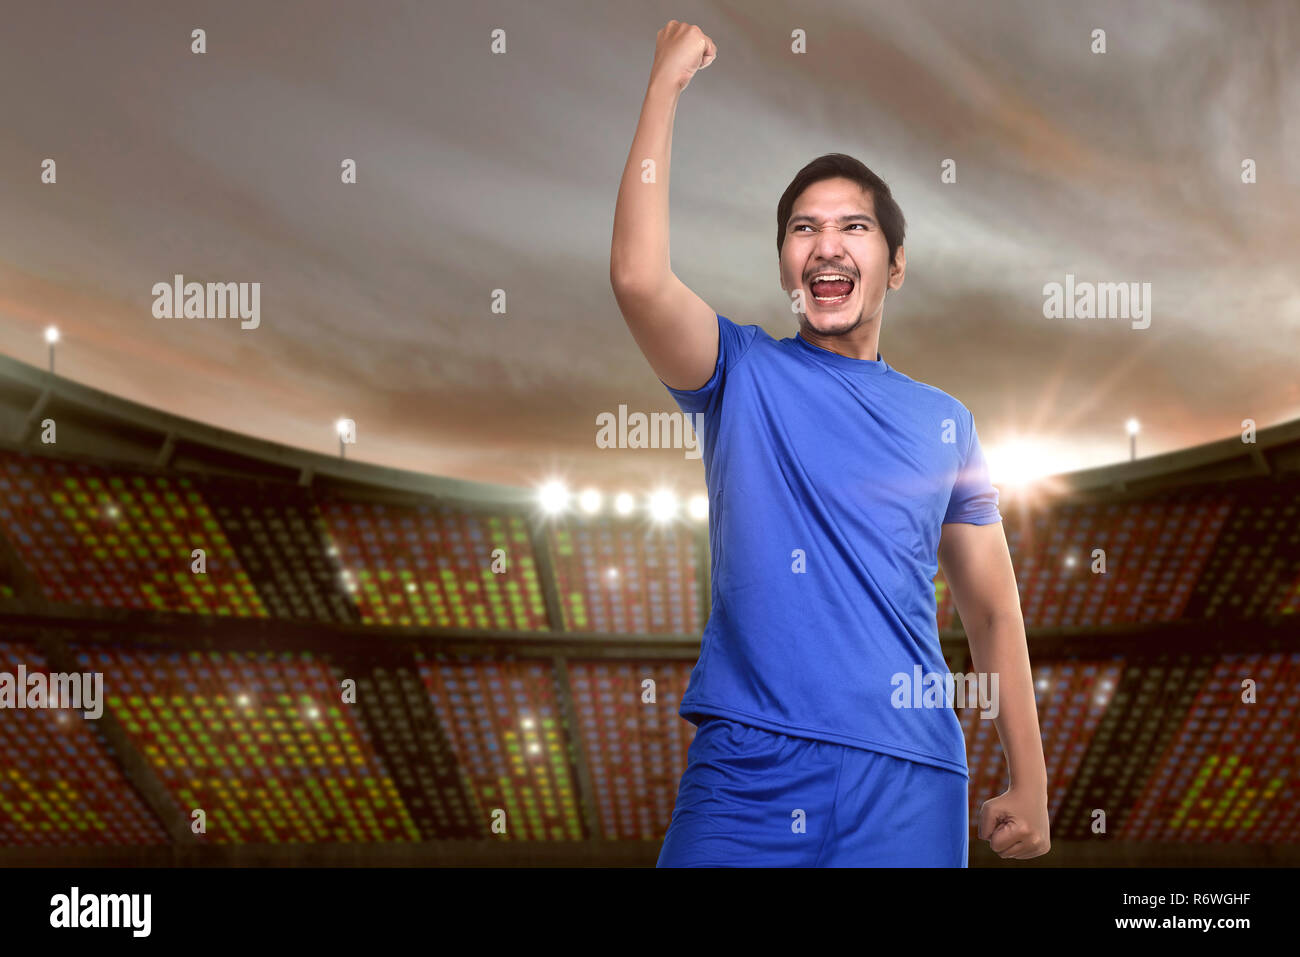 Excited asian footballer with blue jersey celebrating - Stock Image